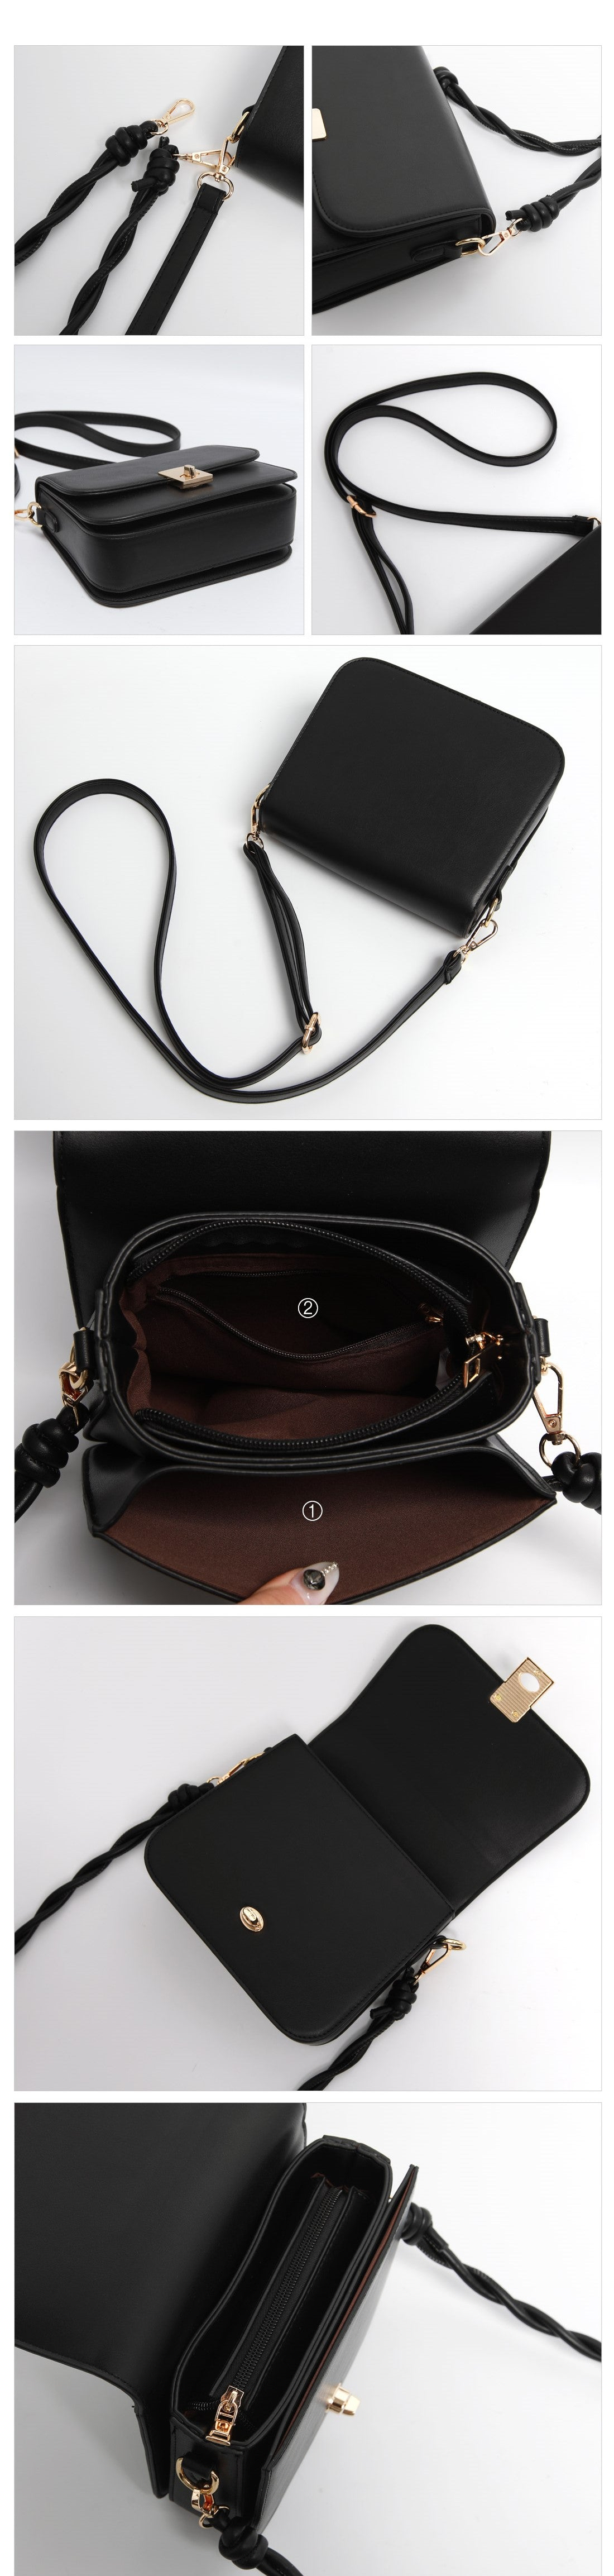 Solid Bag with Twist Strap- Holiholic